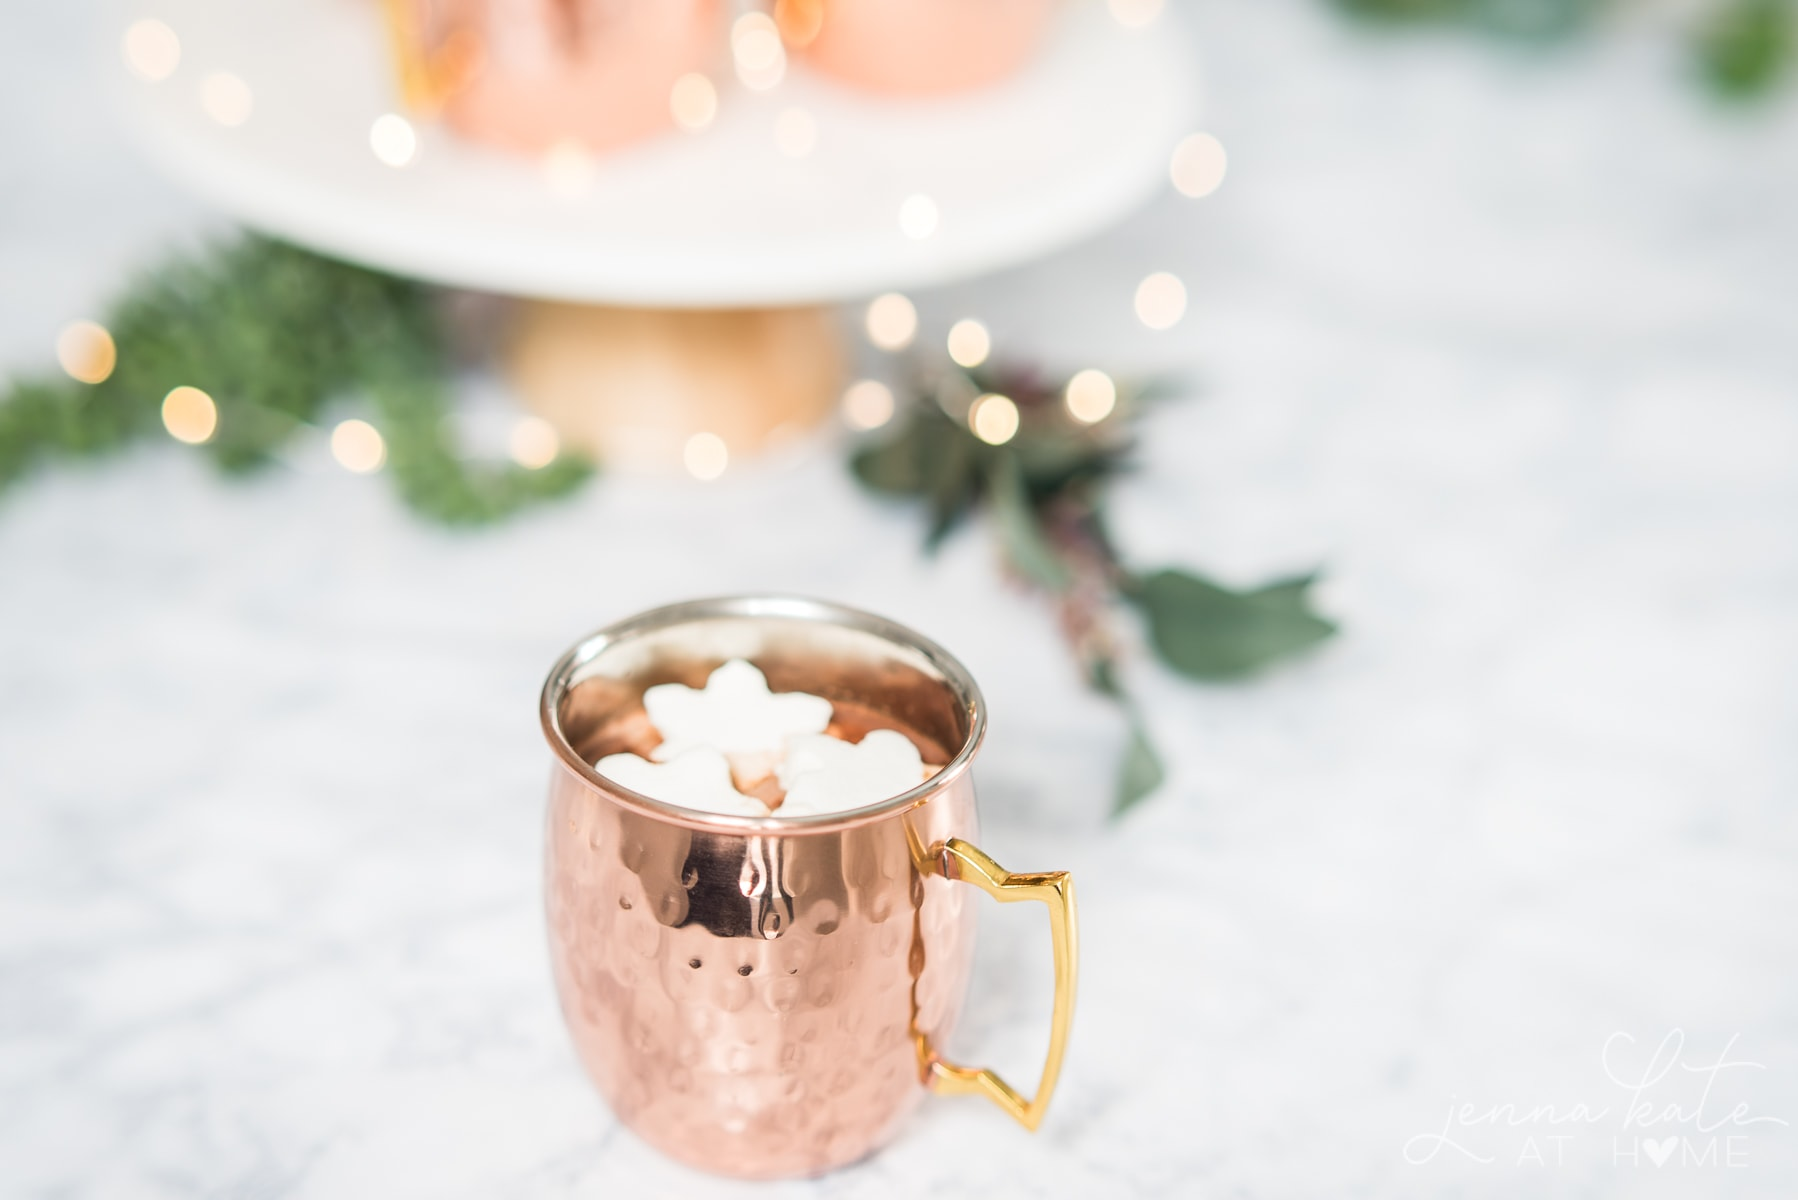 This homemade hot chocolate is made with only three ingredients and requires no cocoa powder, just real chocoloate!